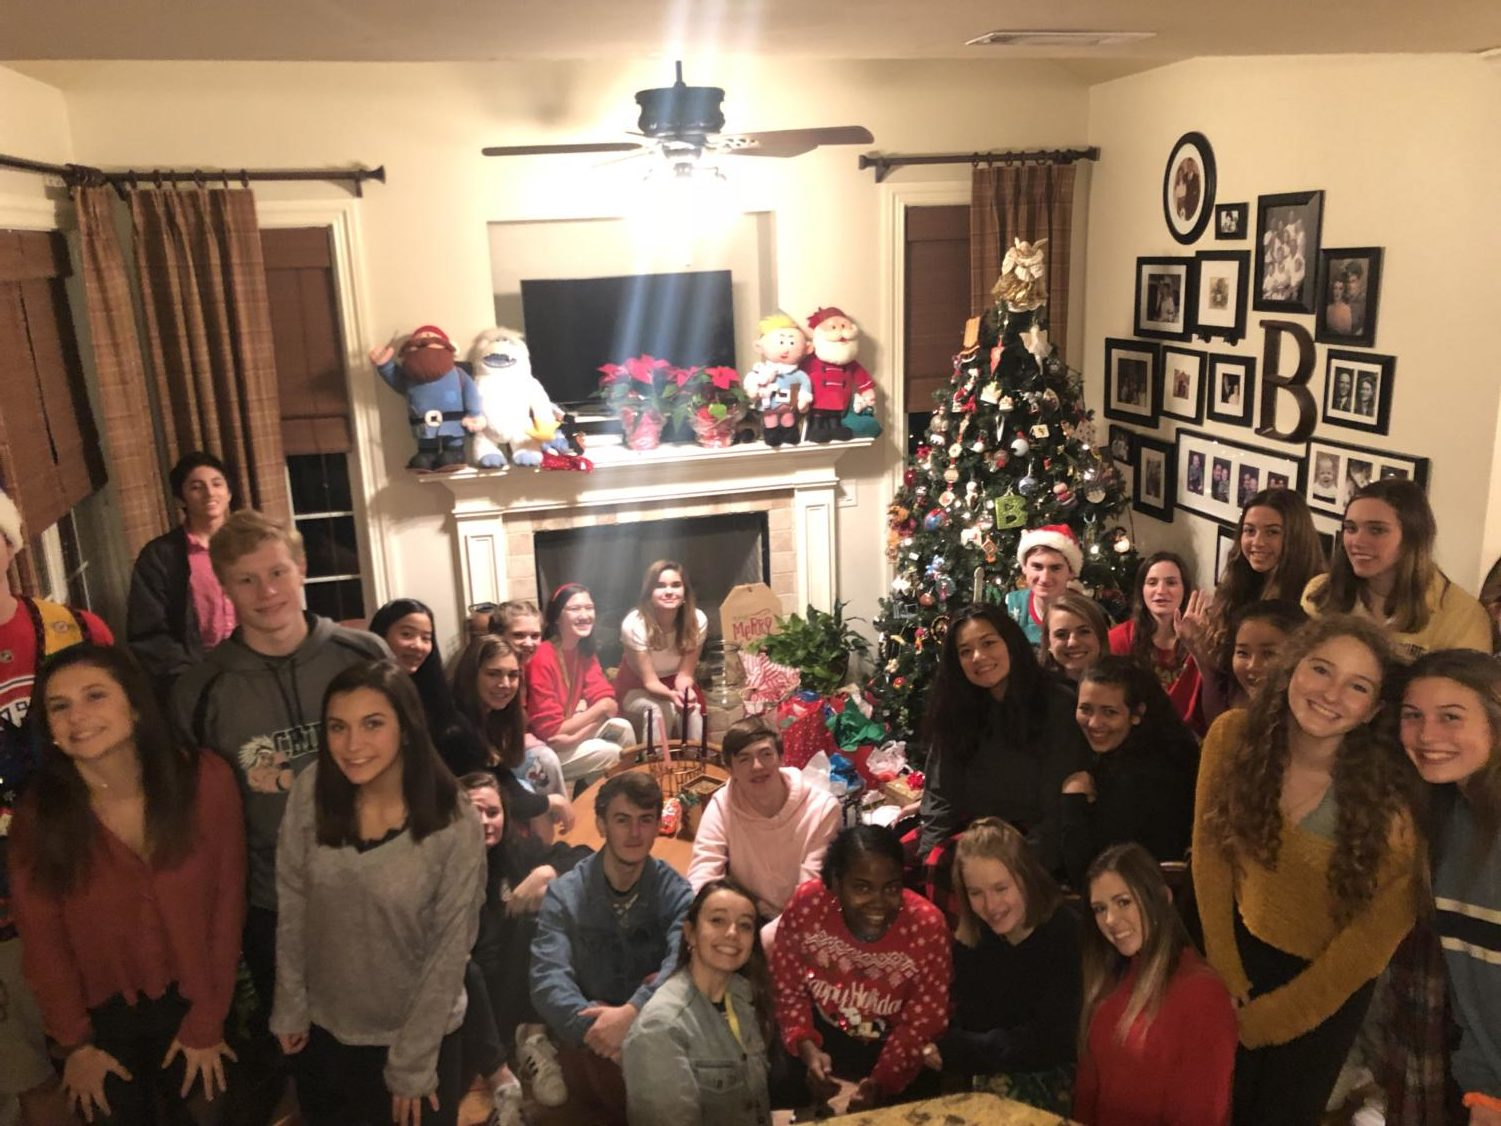 Swim Team members pose for a group photo in their Christmas attire.